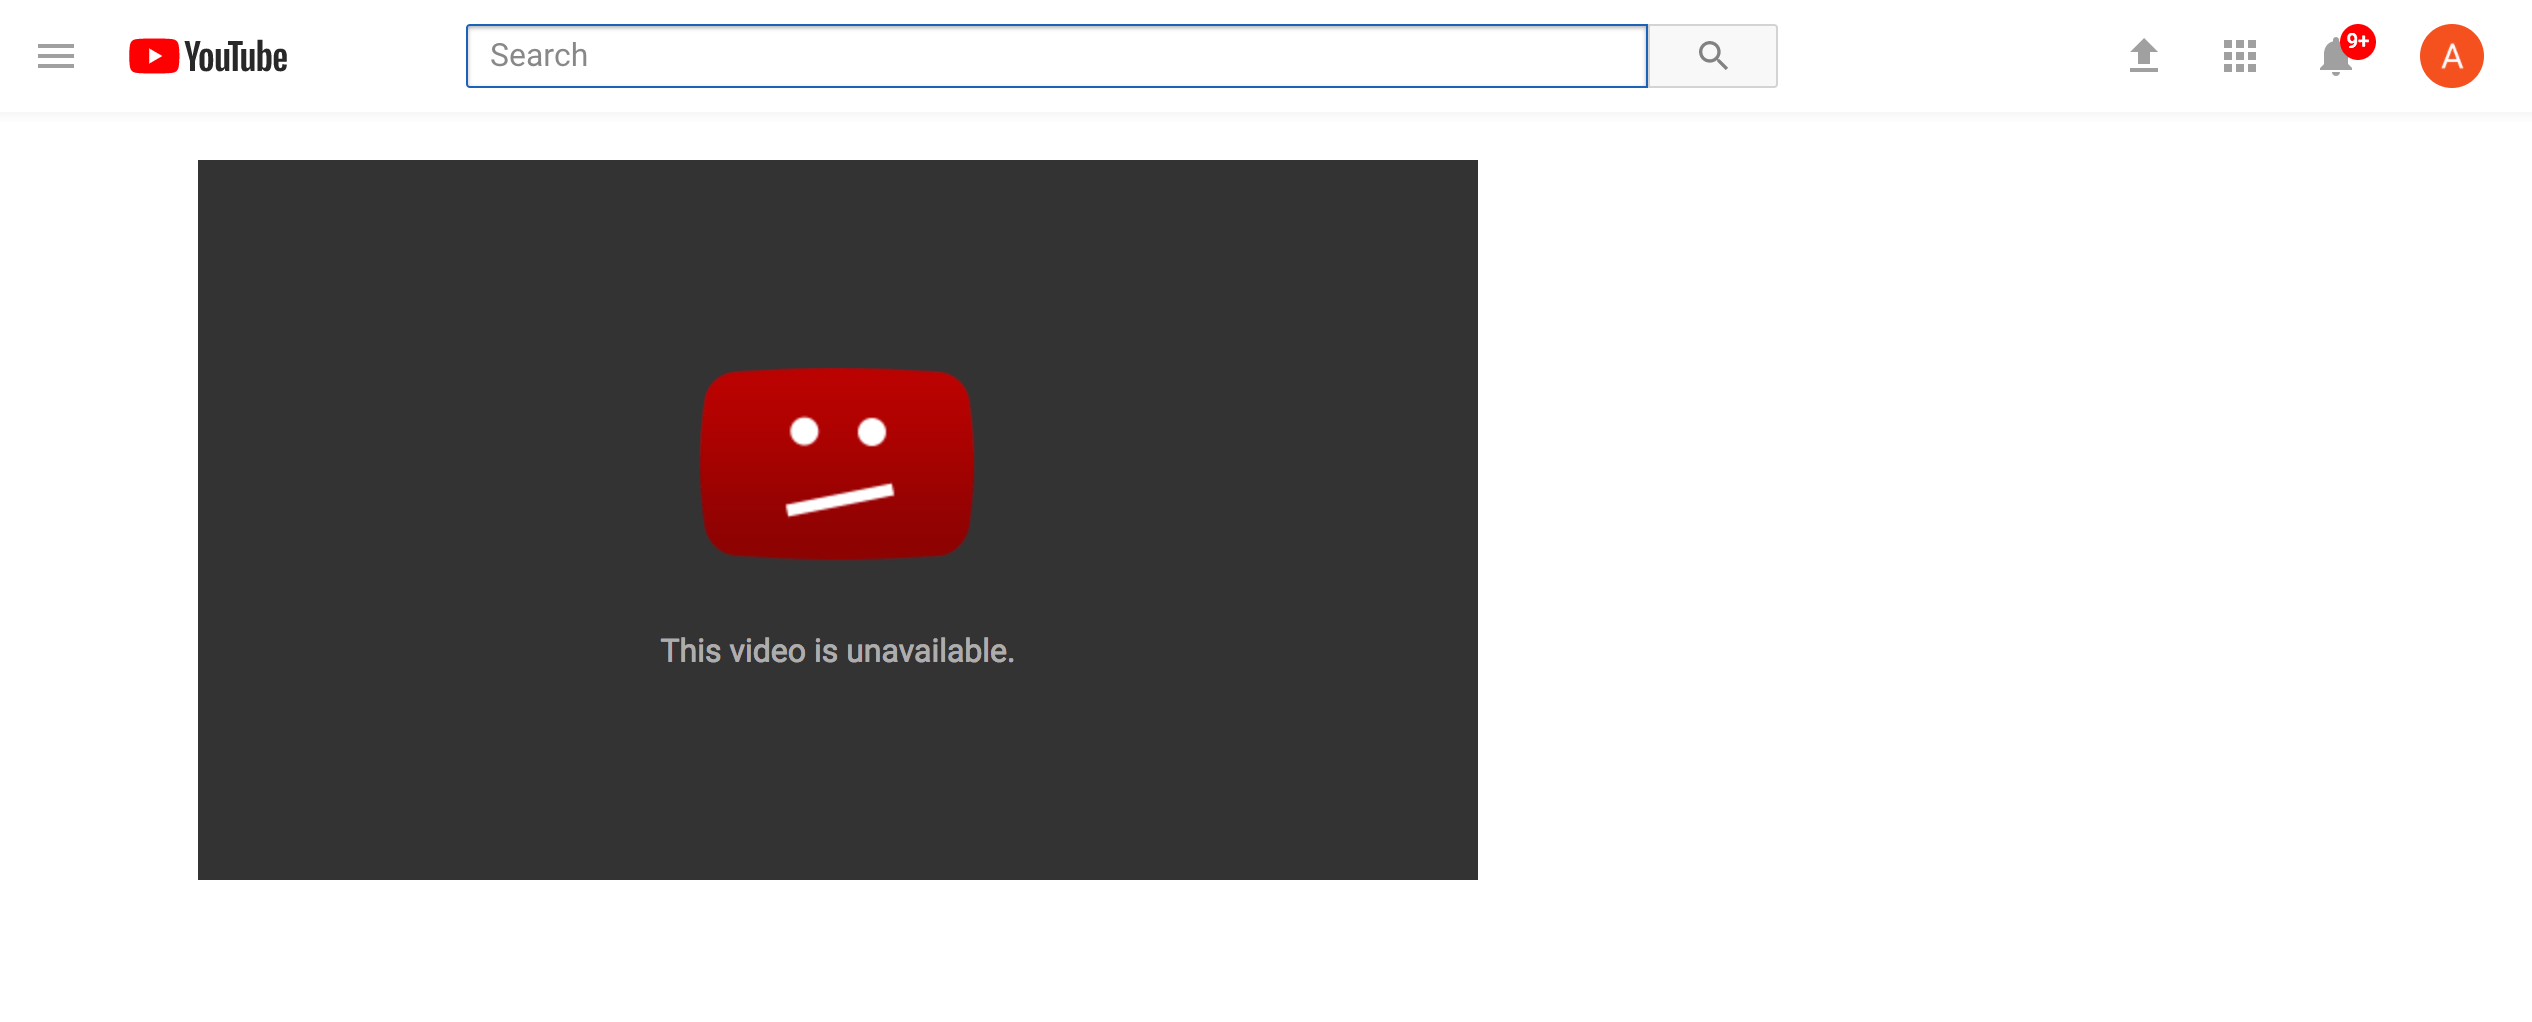 """https://www.youtube.com/watch?v=XCp7O """"This Video is Unavailable"""""""